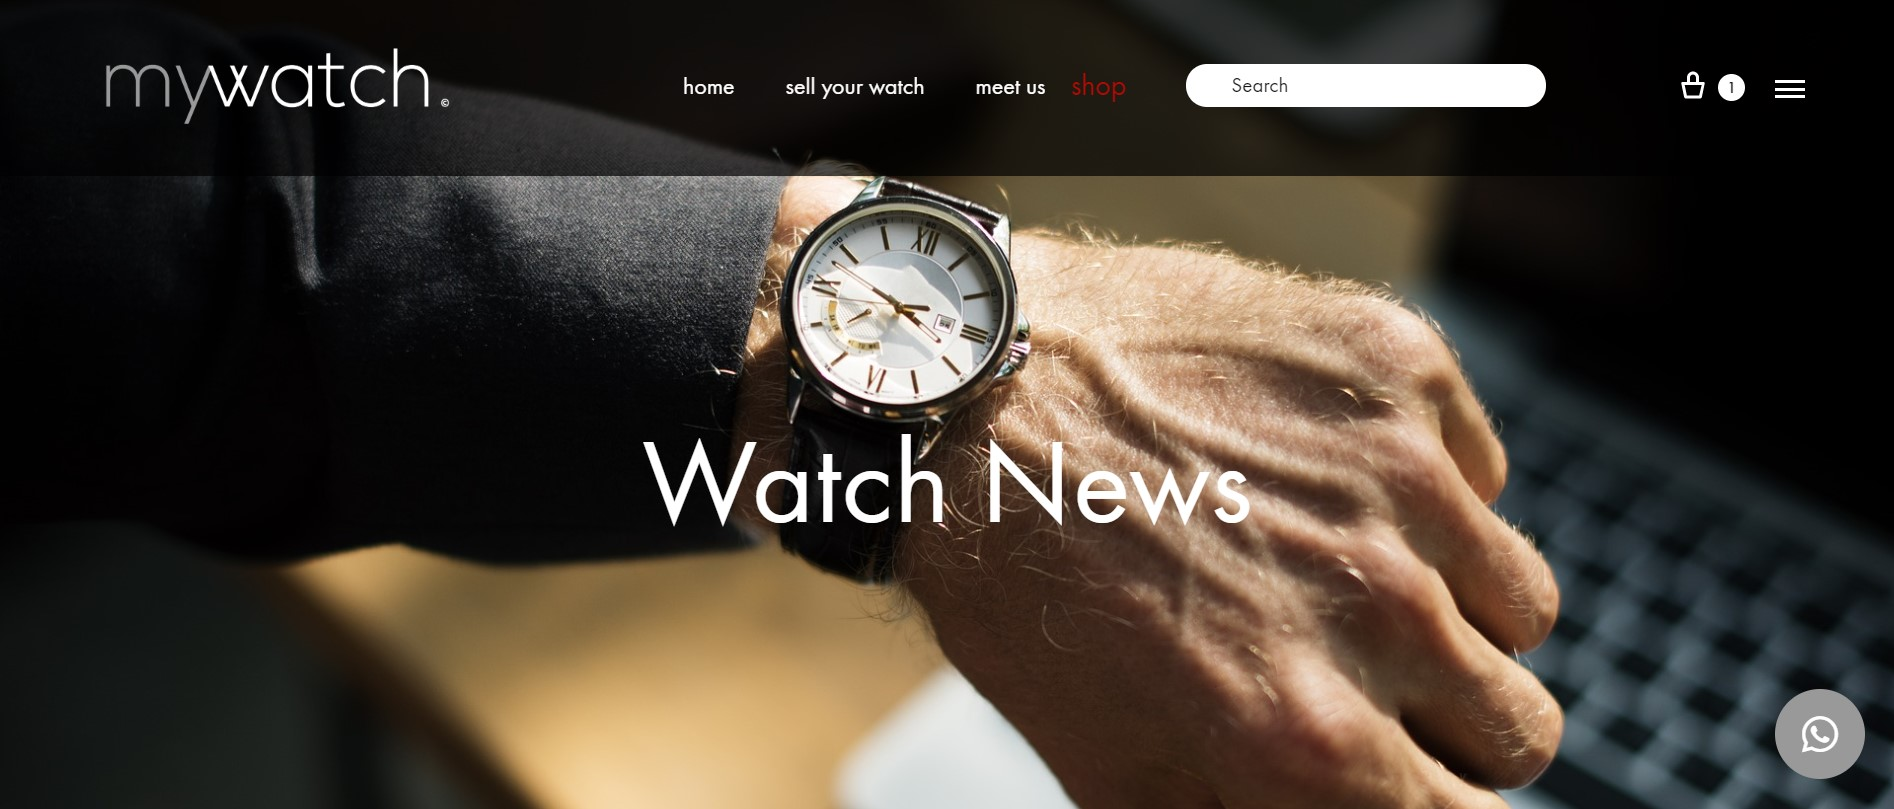 My Watch Watch News